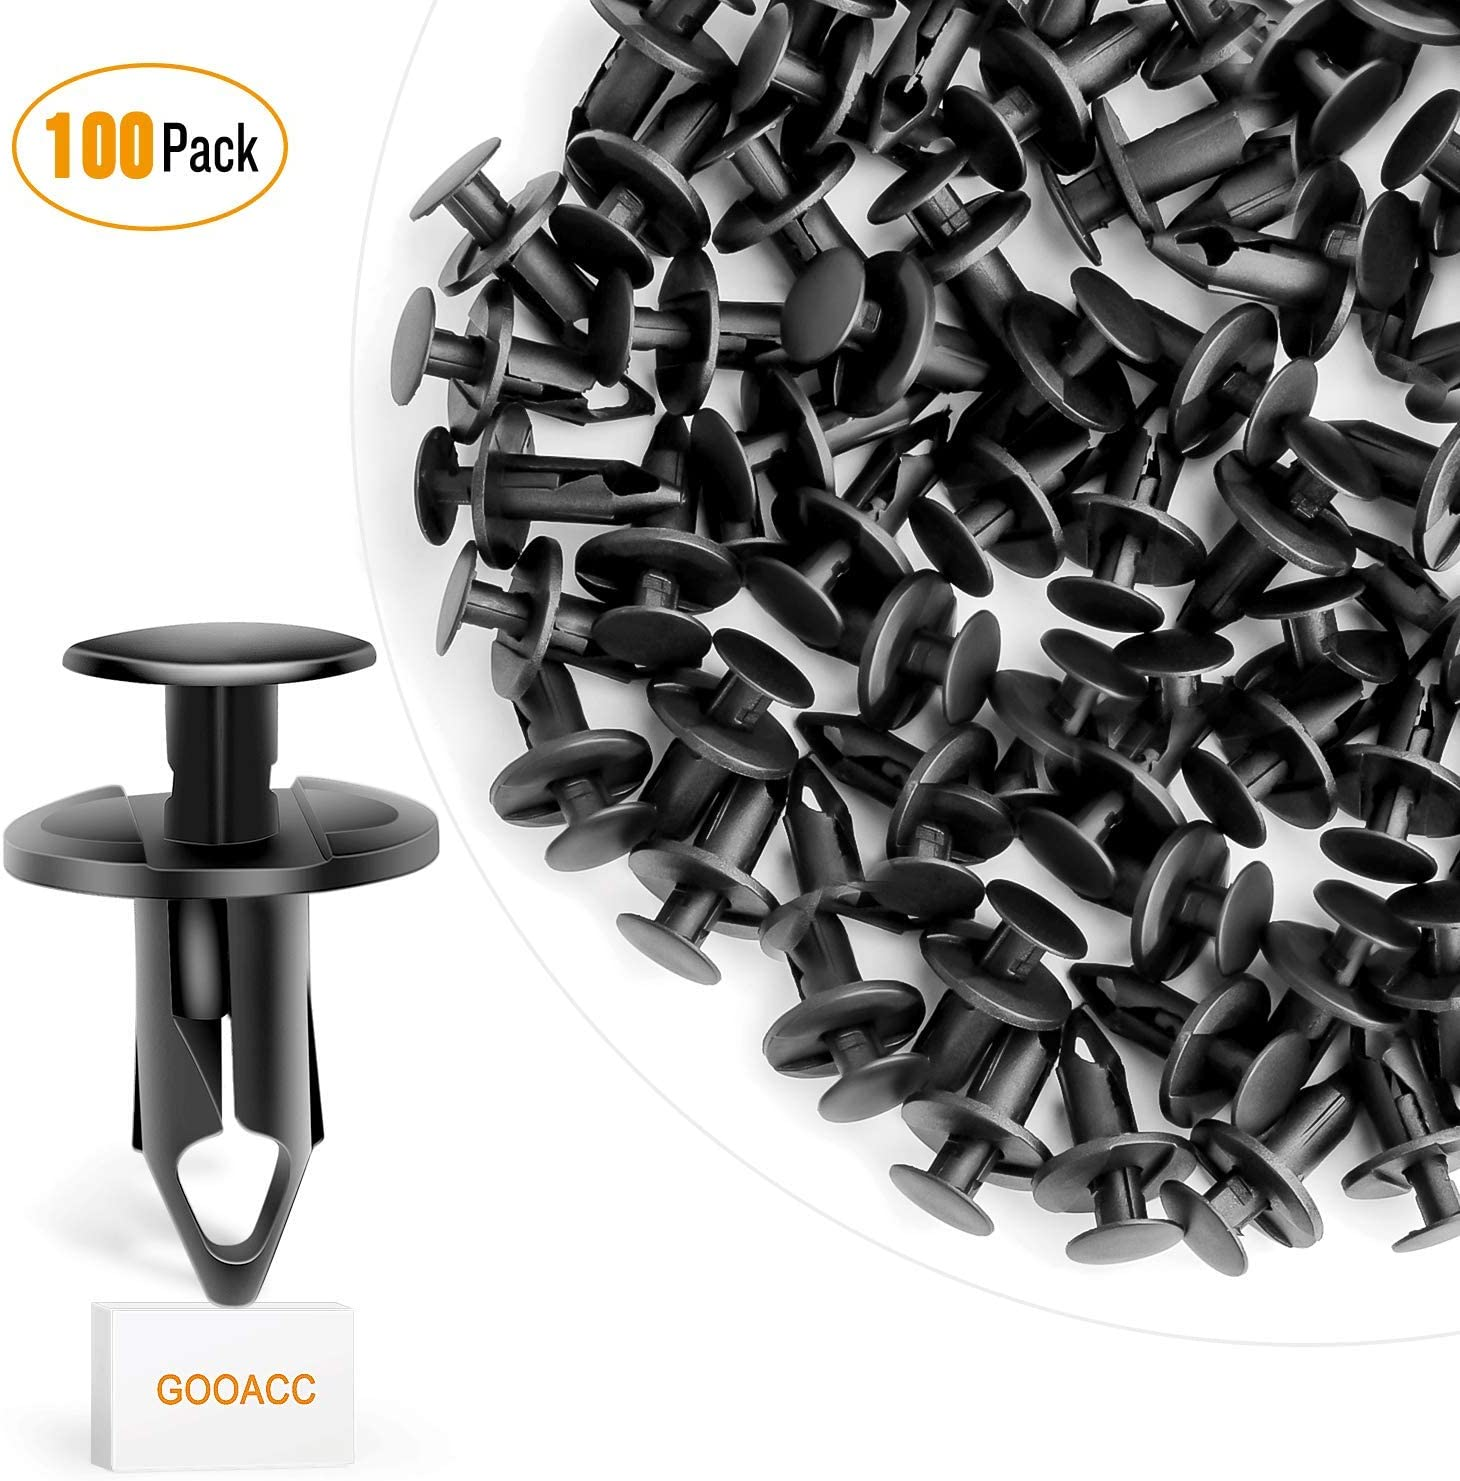 60 Pcs Fit 8mm Hole Plastic Fastener Push Type Clip For GM For Chevrolet For GMC